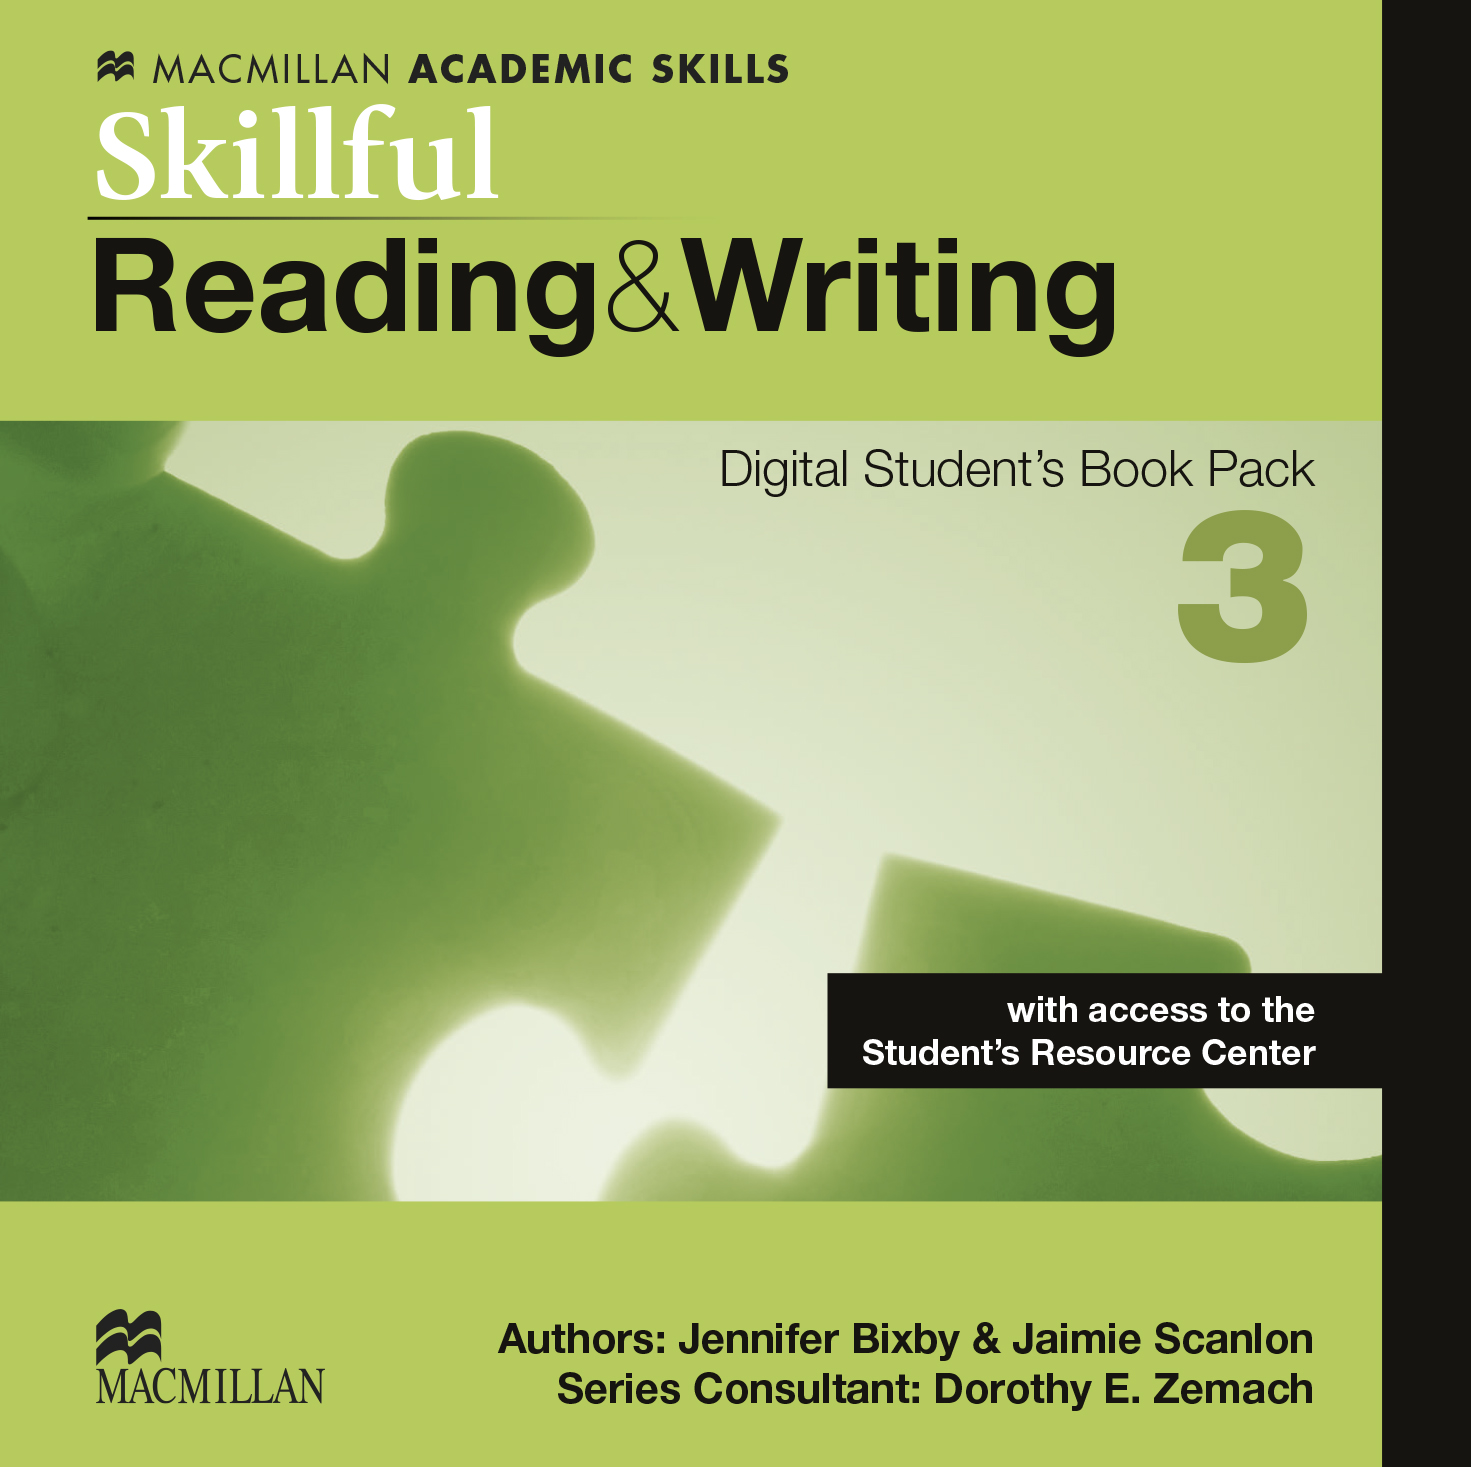 Skillful Level 3 Reading & Writing Digital Student